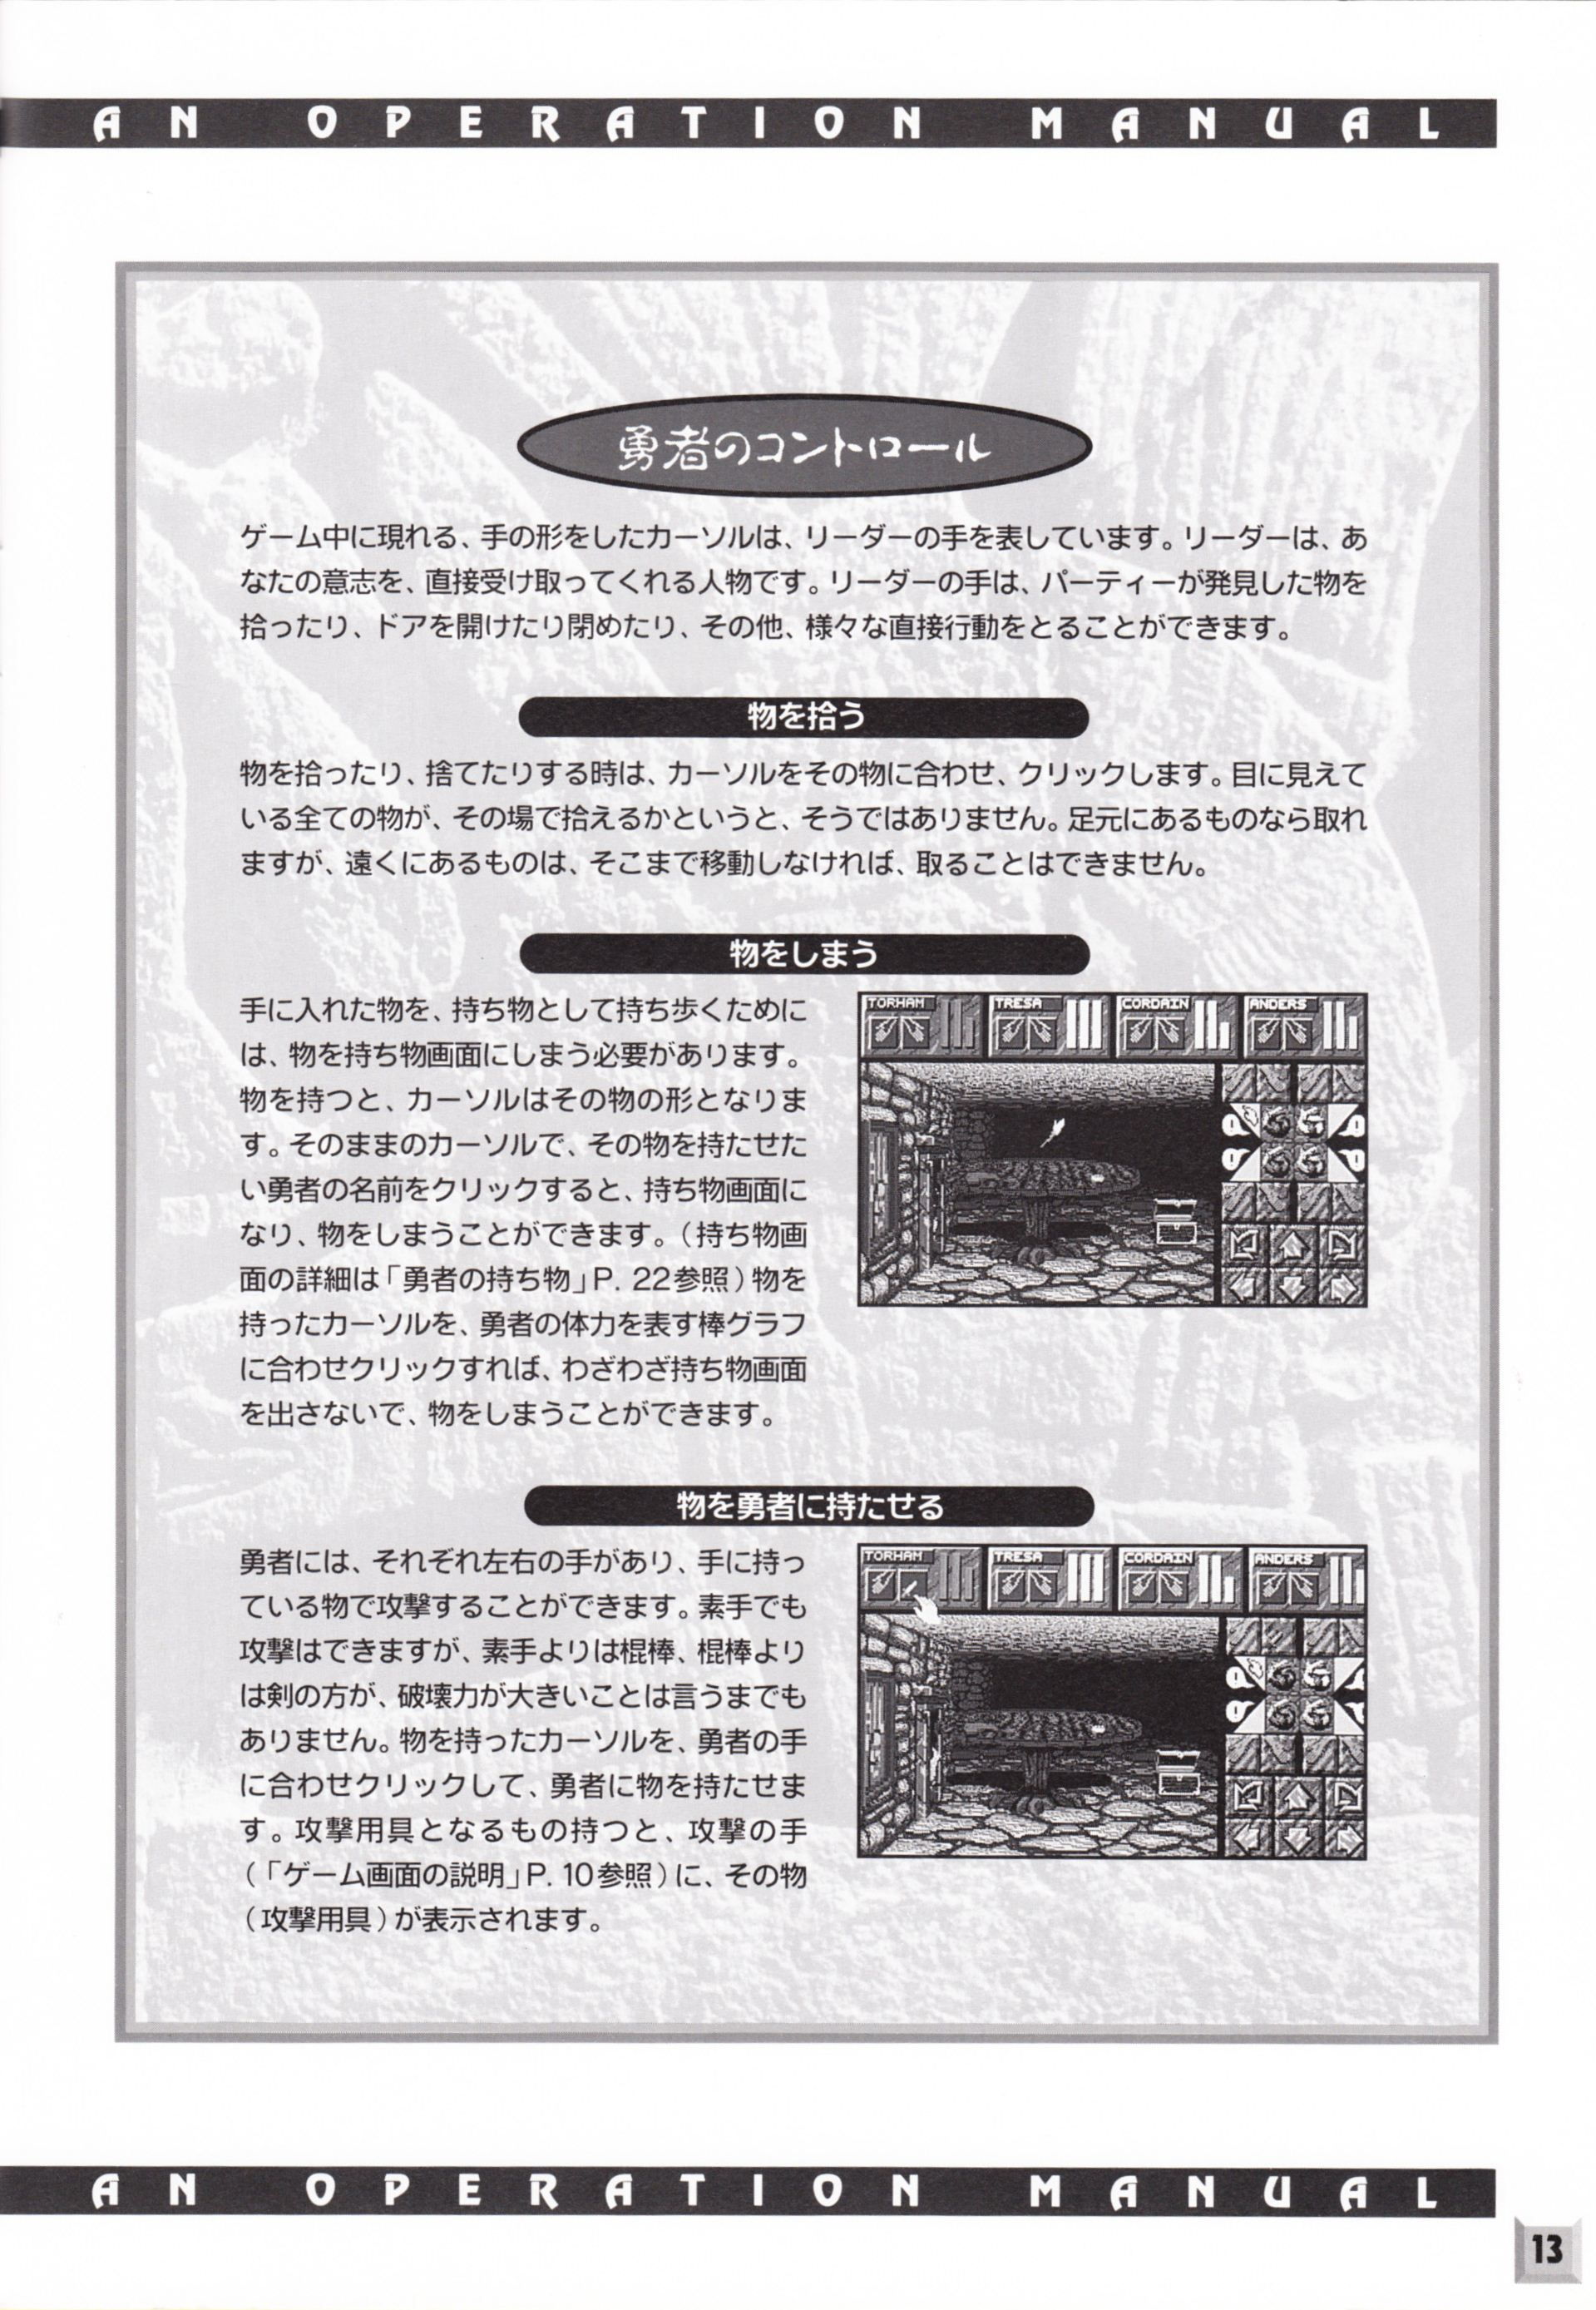 Game - Dungeon Master II - JP - PC-9801 - 3.5-inch - An Operation Manual - Page 015 - Scan